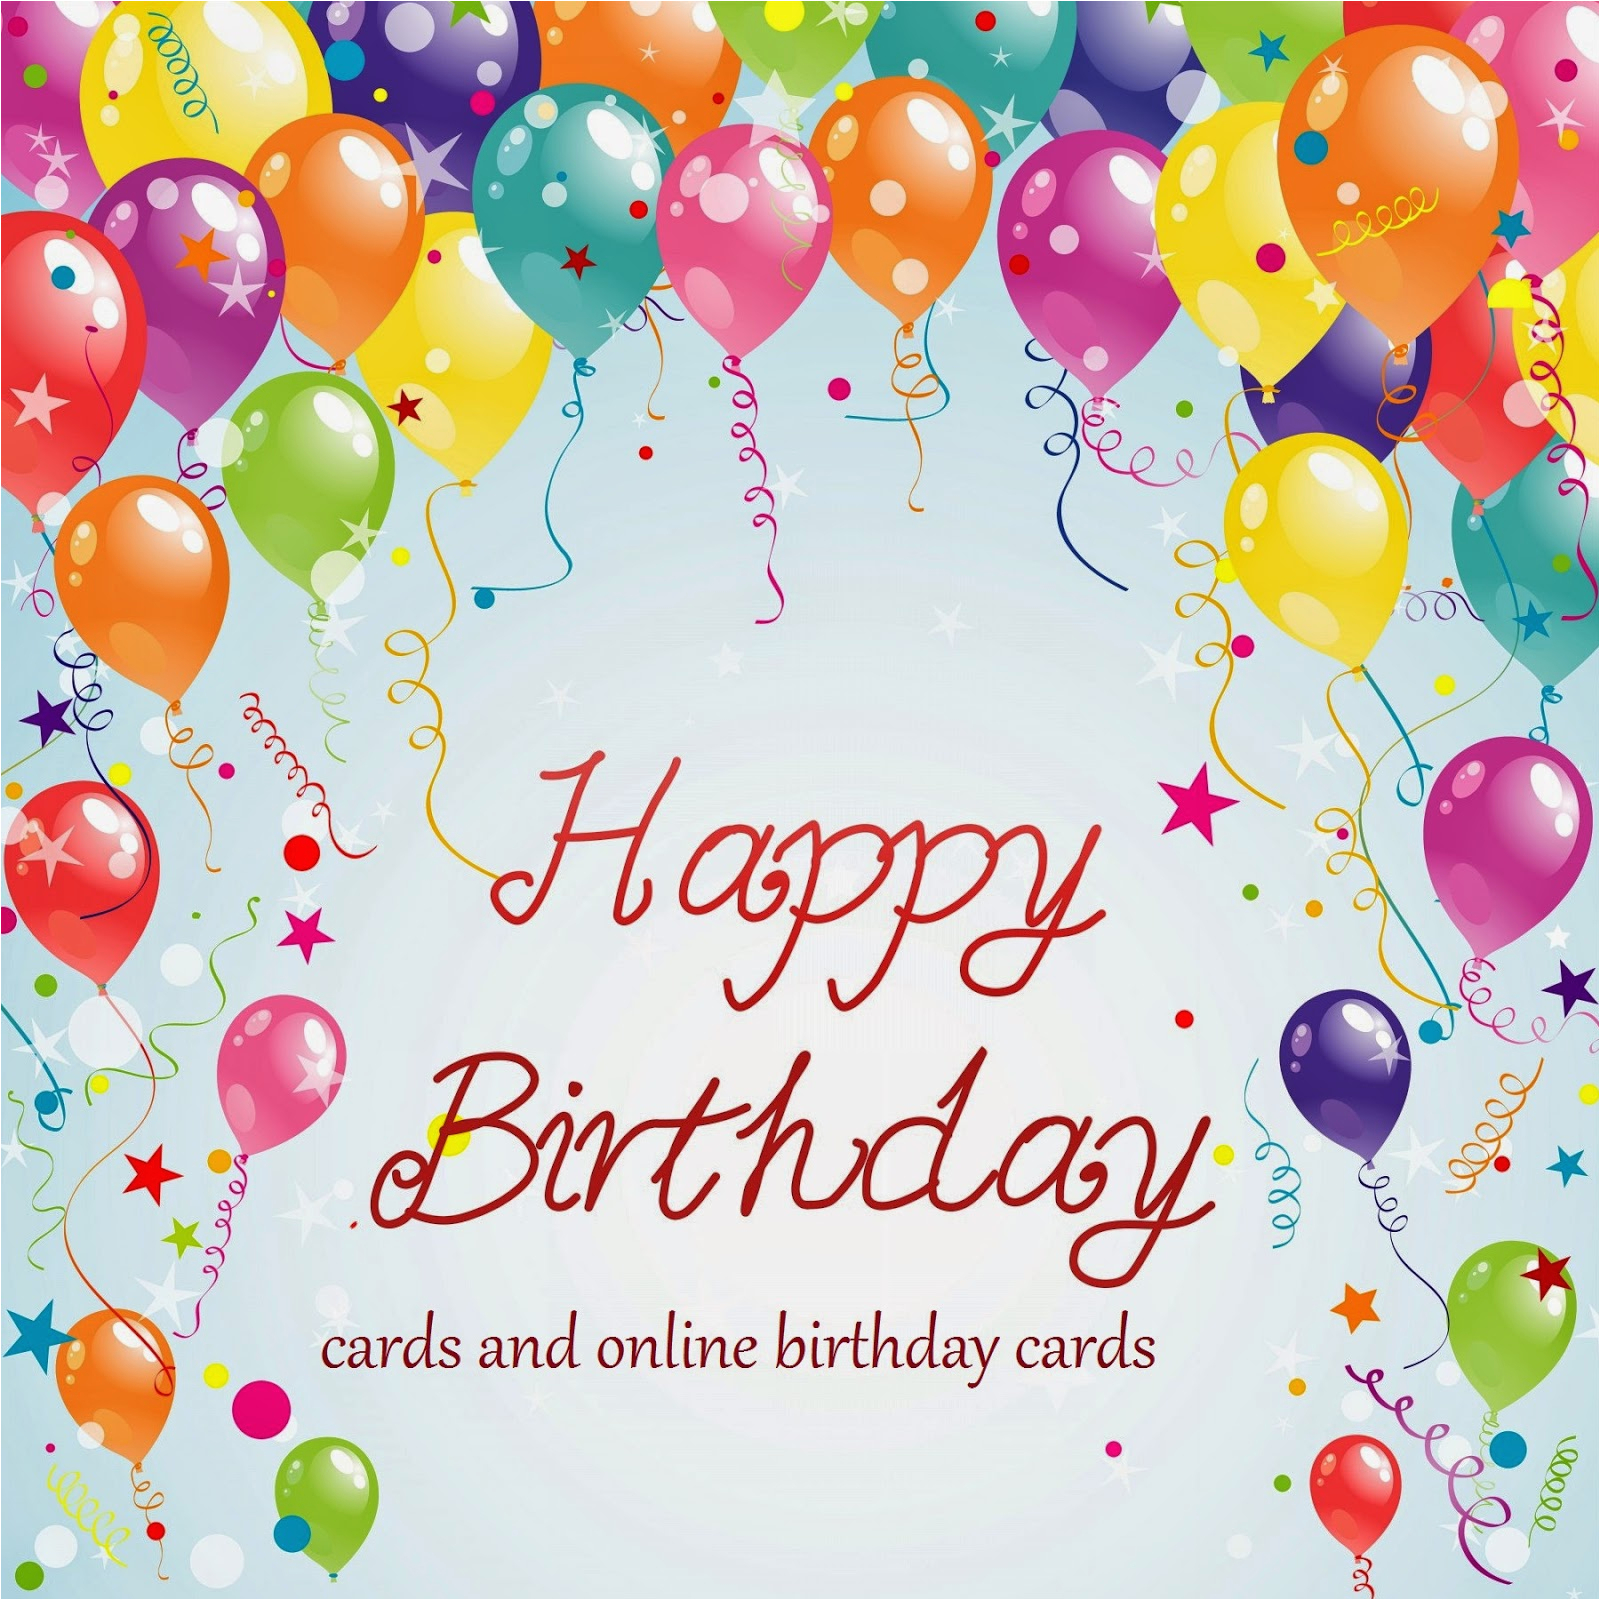 Happy Birthday Cards Online Free And E